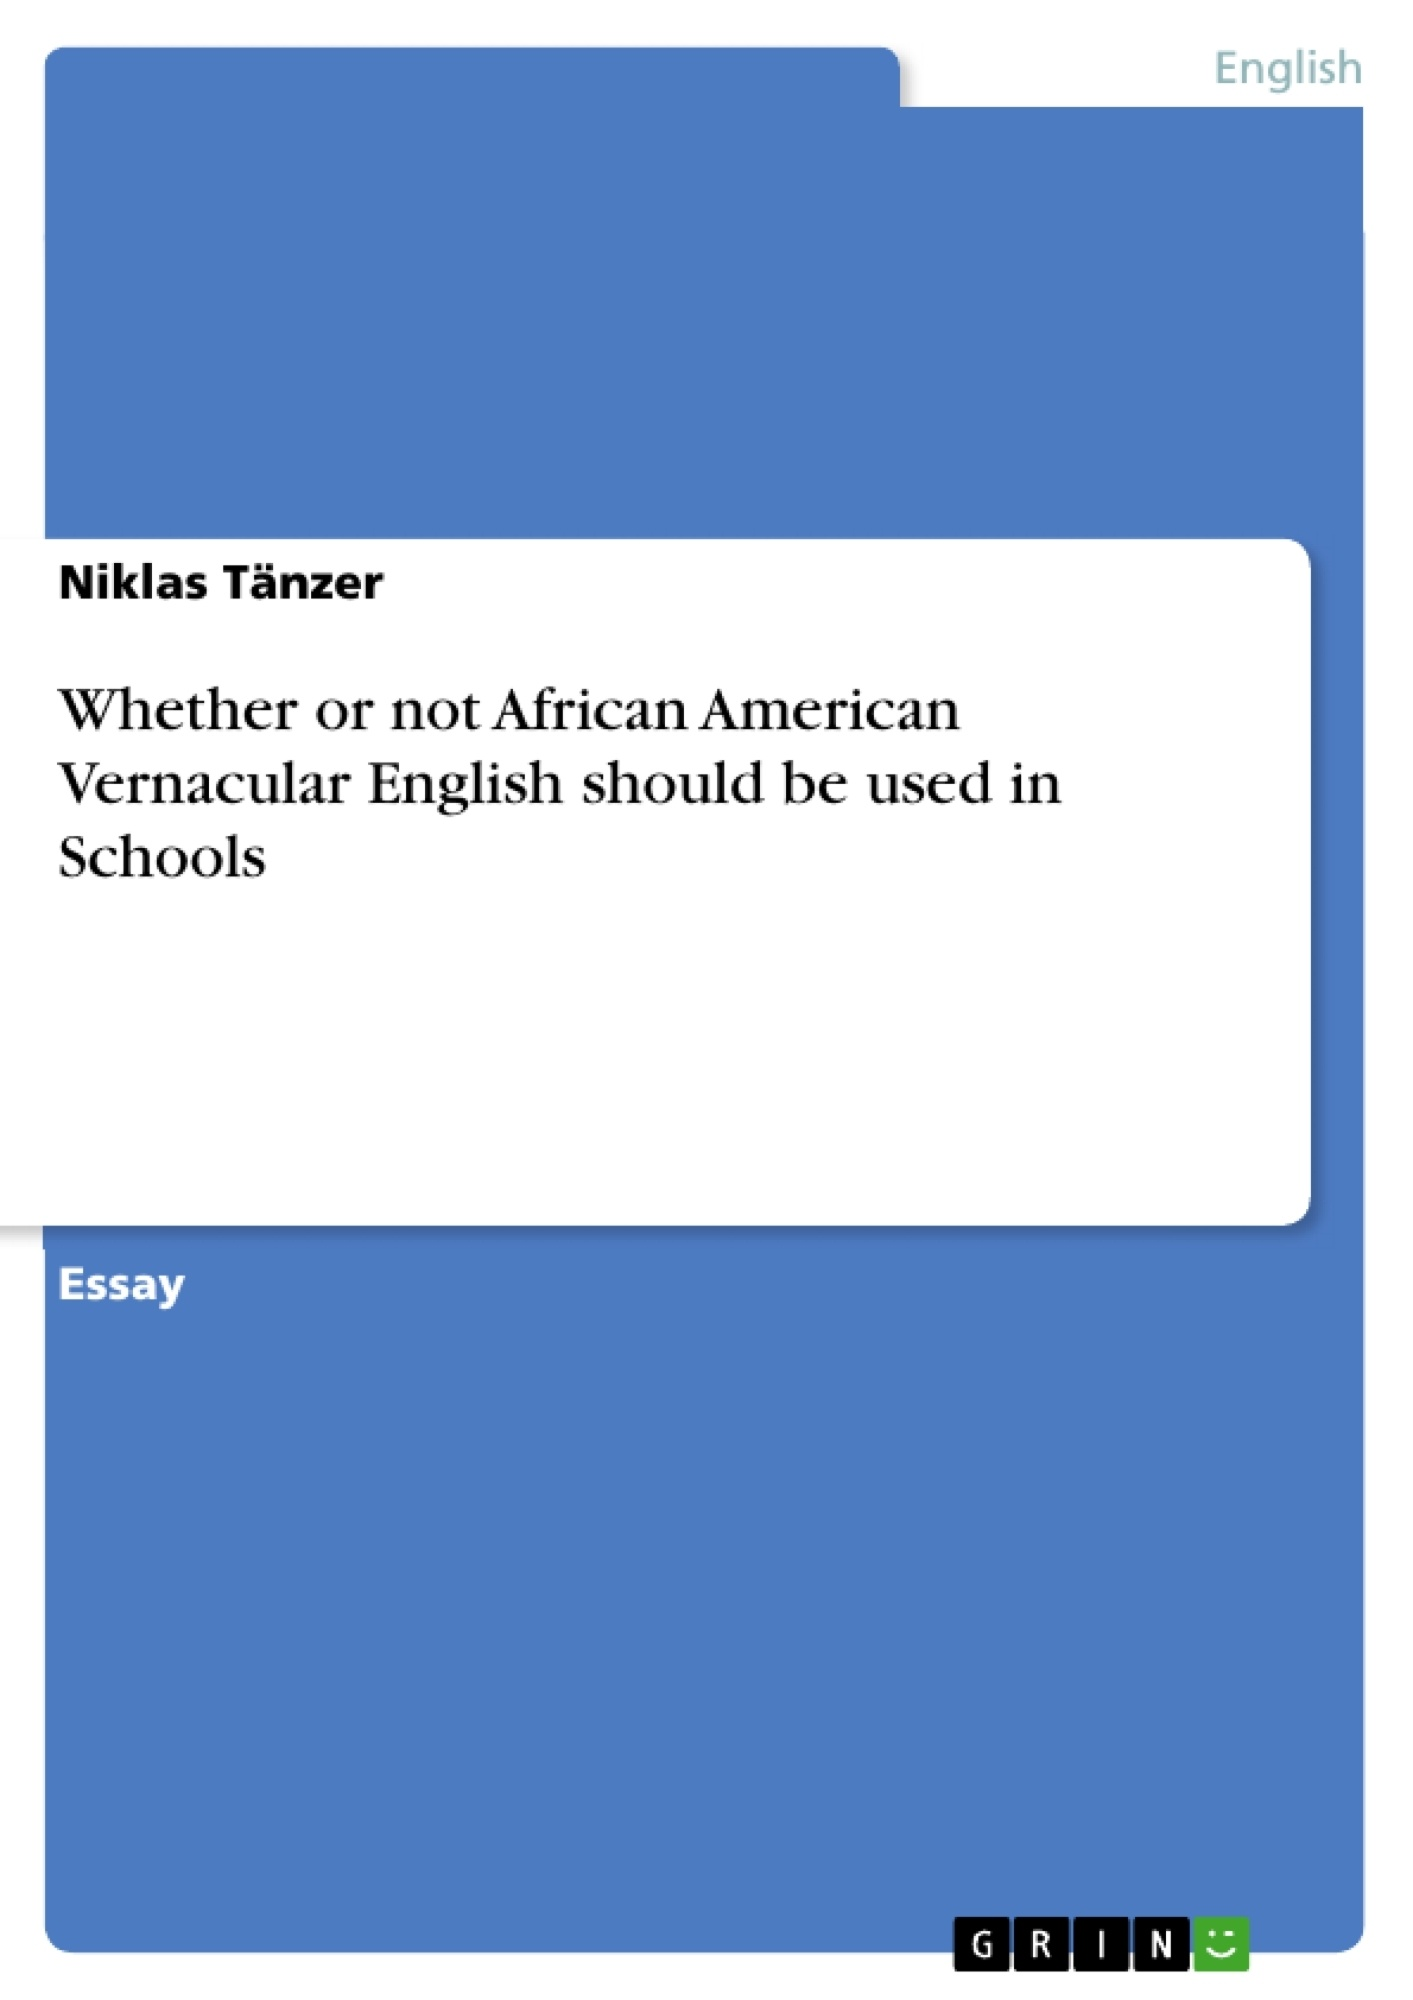 Title: Whether or not African American Vernacular English should be used in Schools